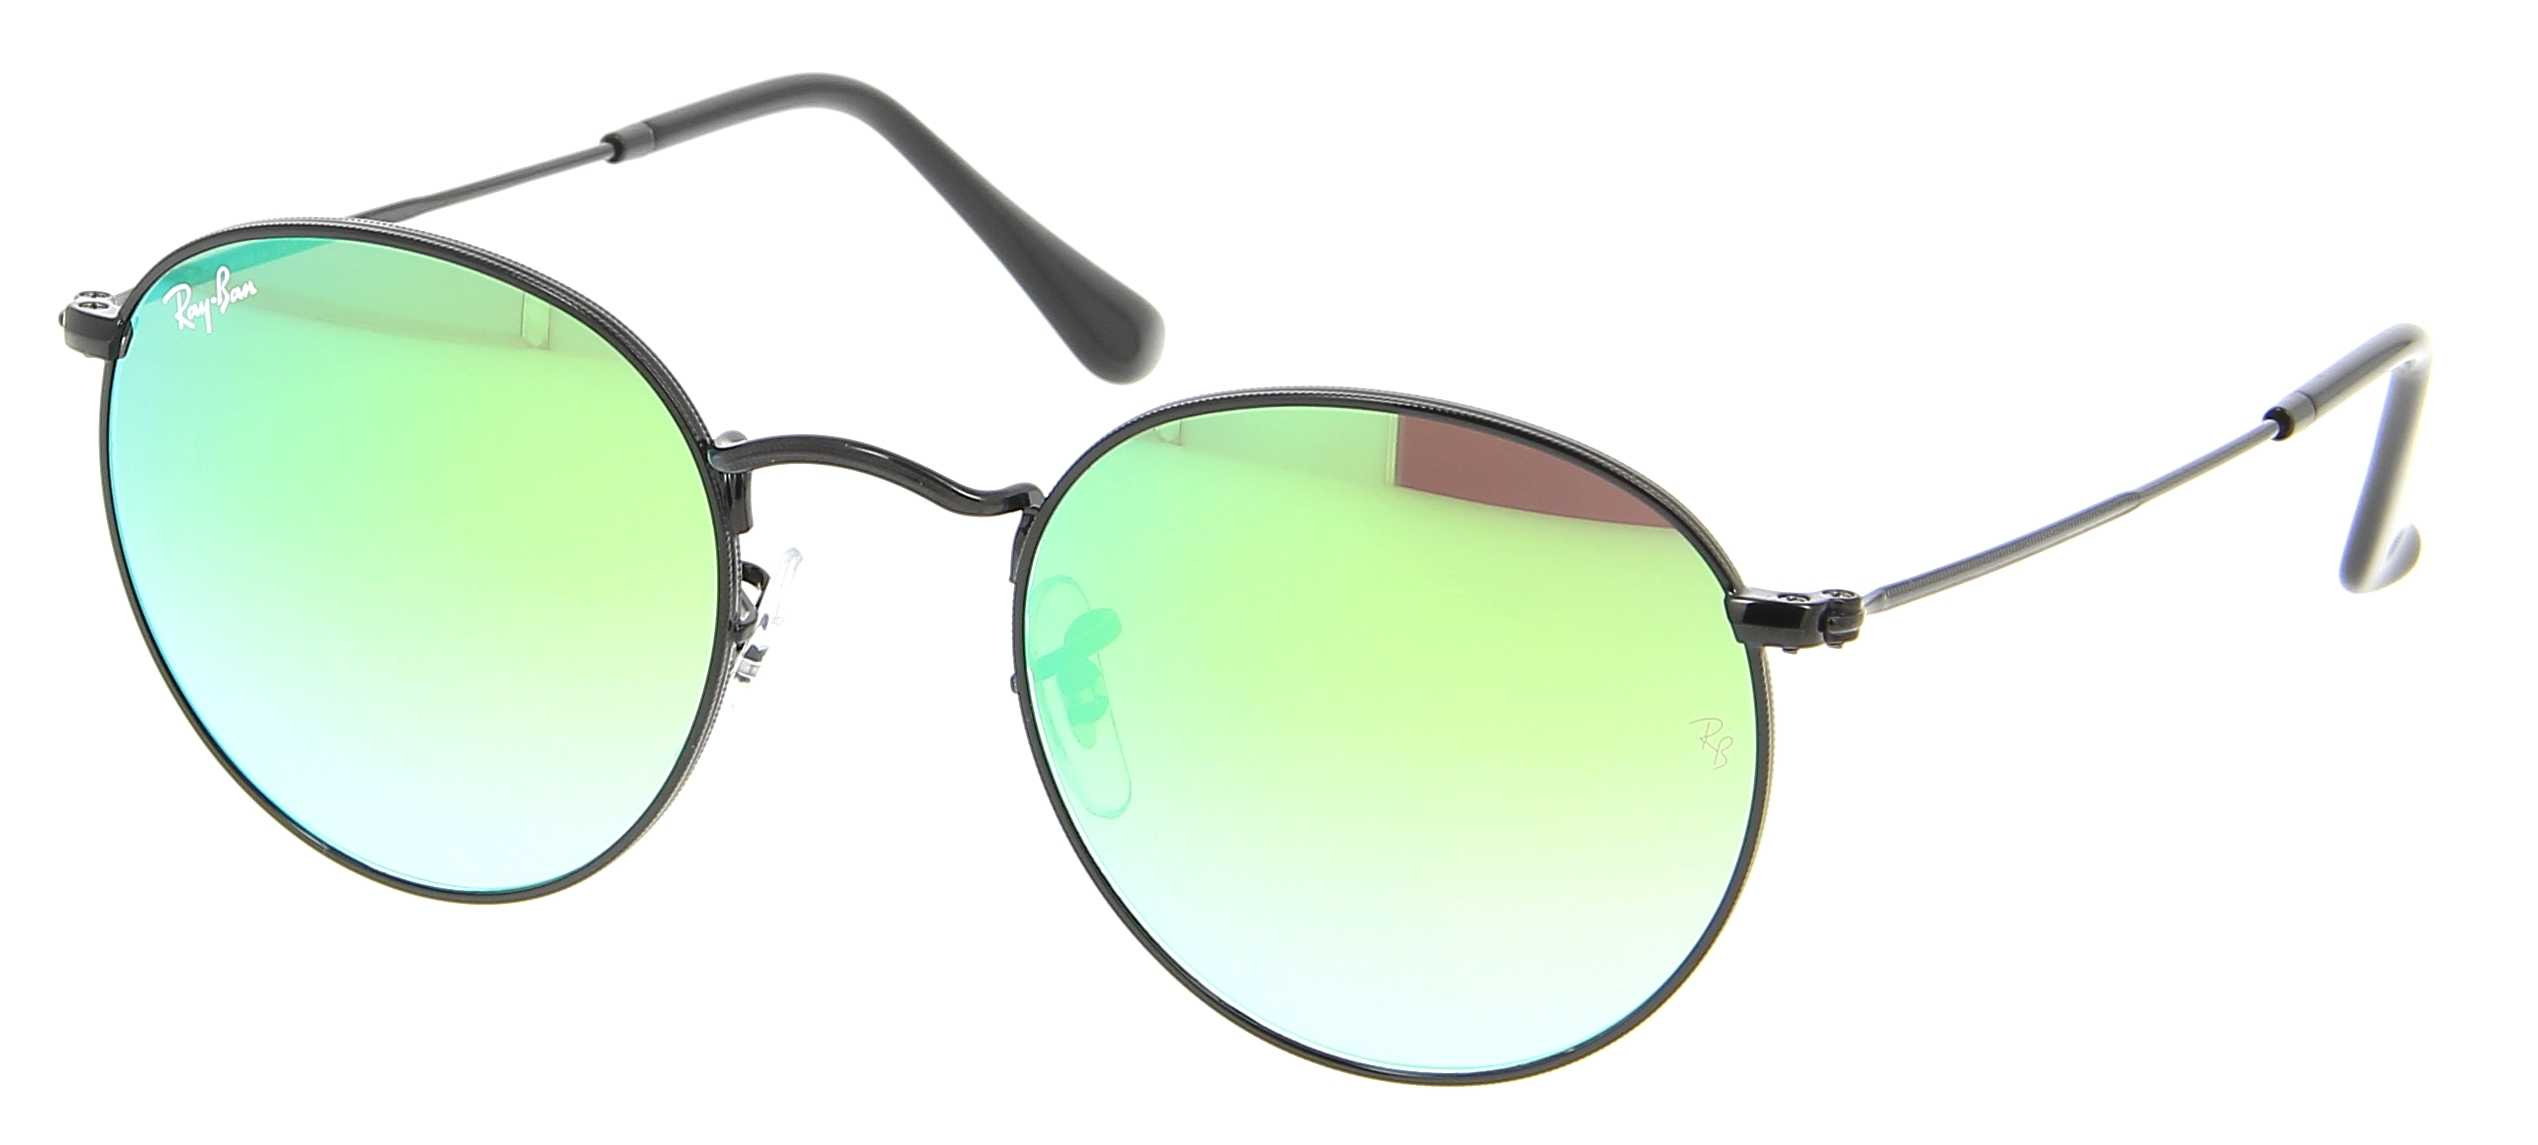 e39484096be7f Details about New Ray Ban 3447-002 4J-50 Black   Green Gradient Flash 50mm  Sunglasses